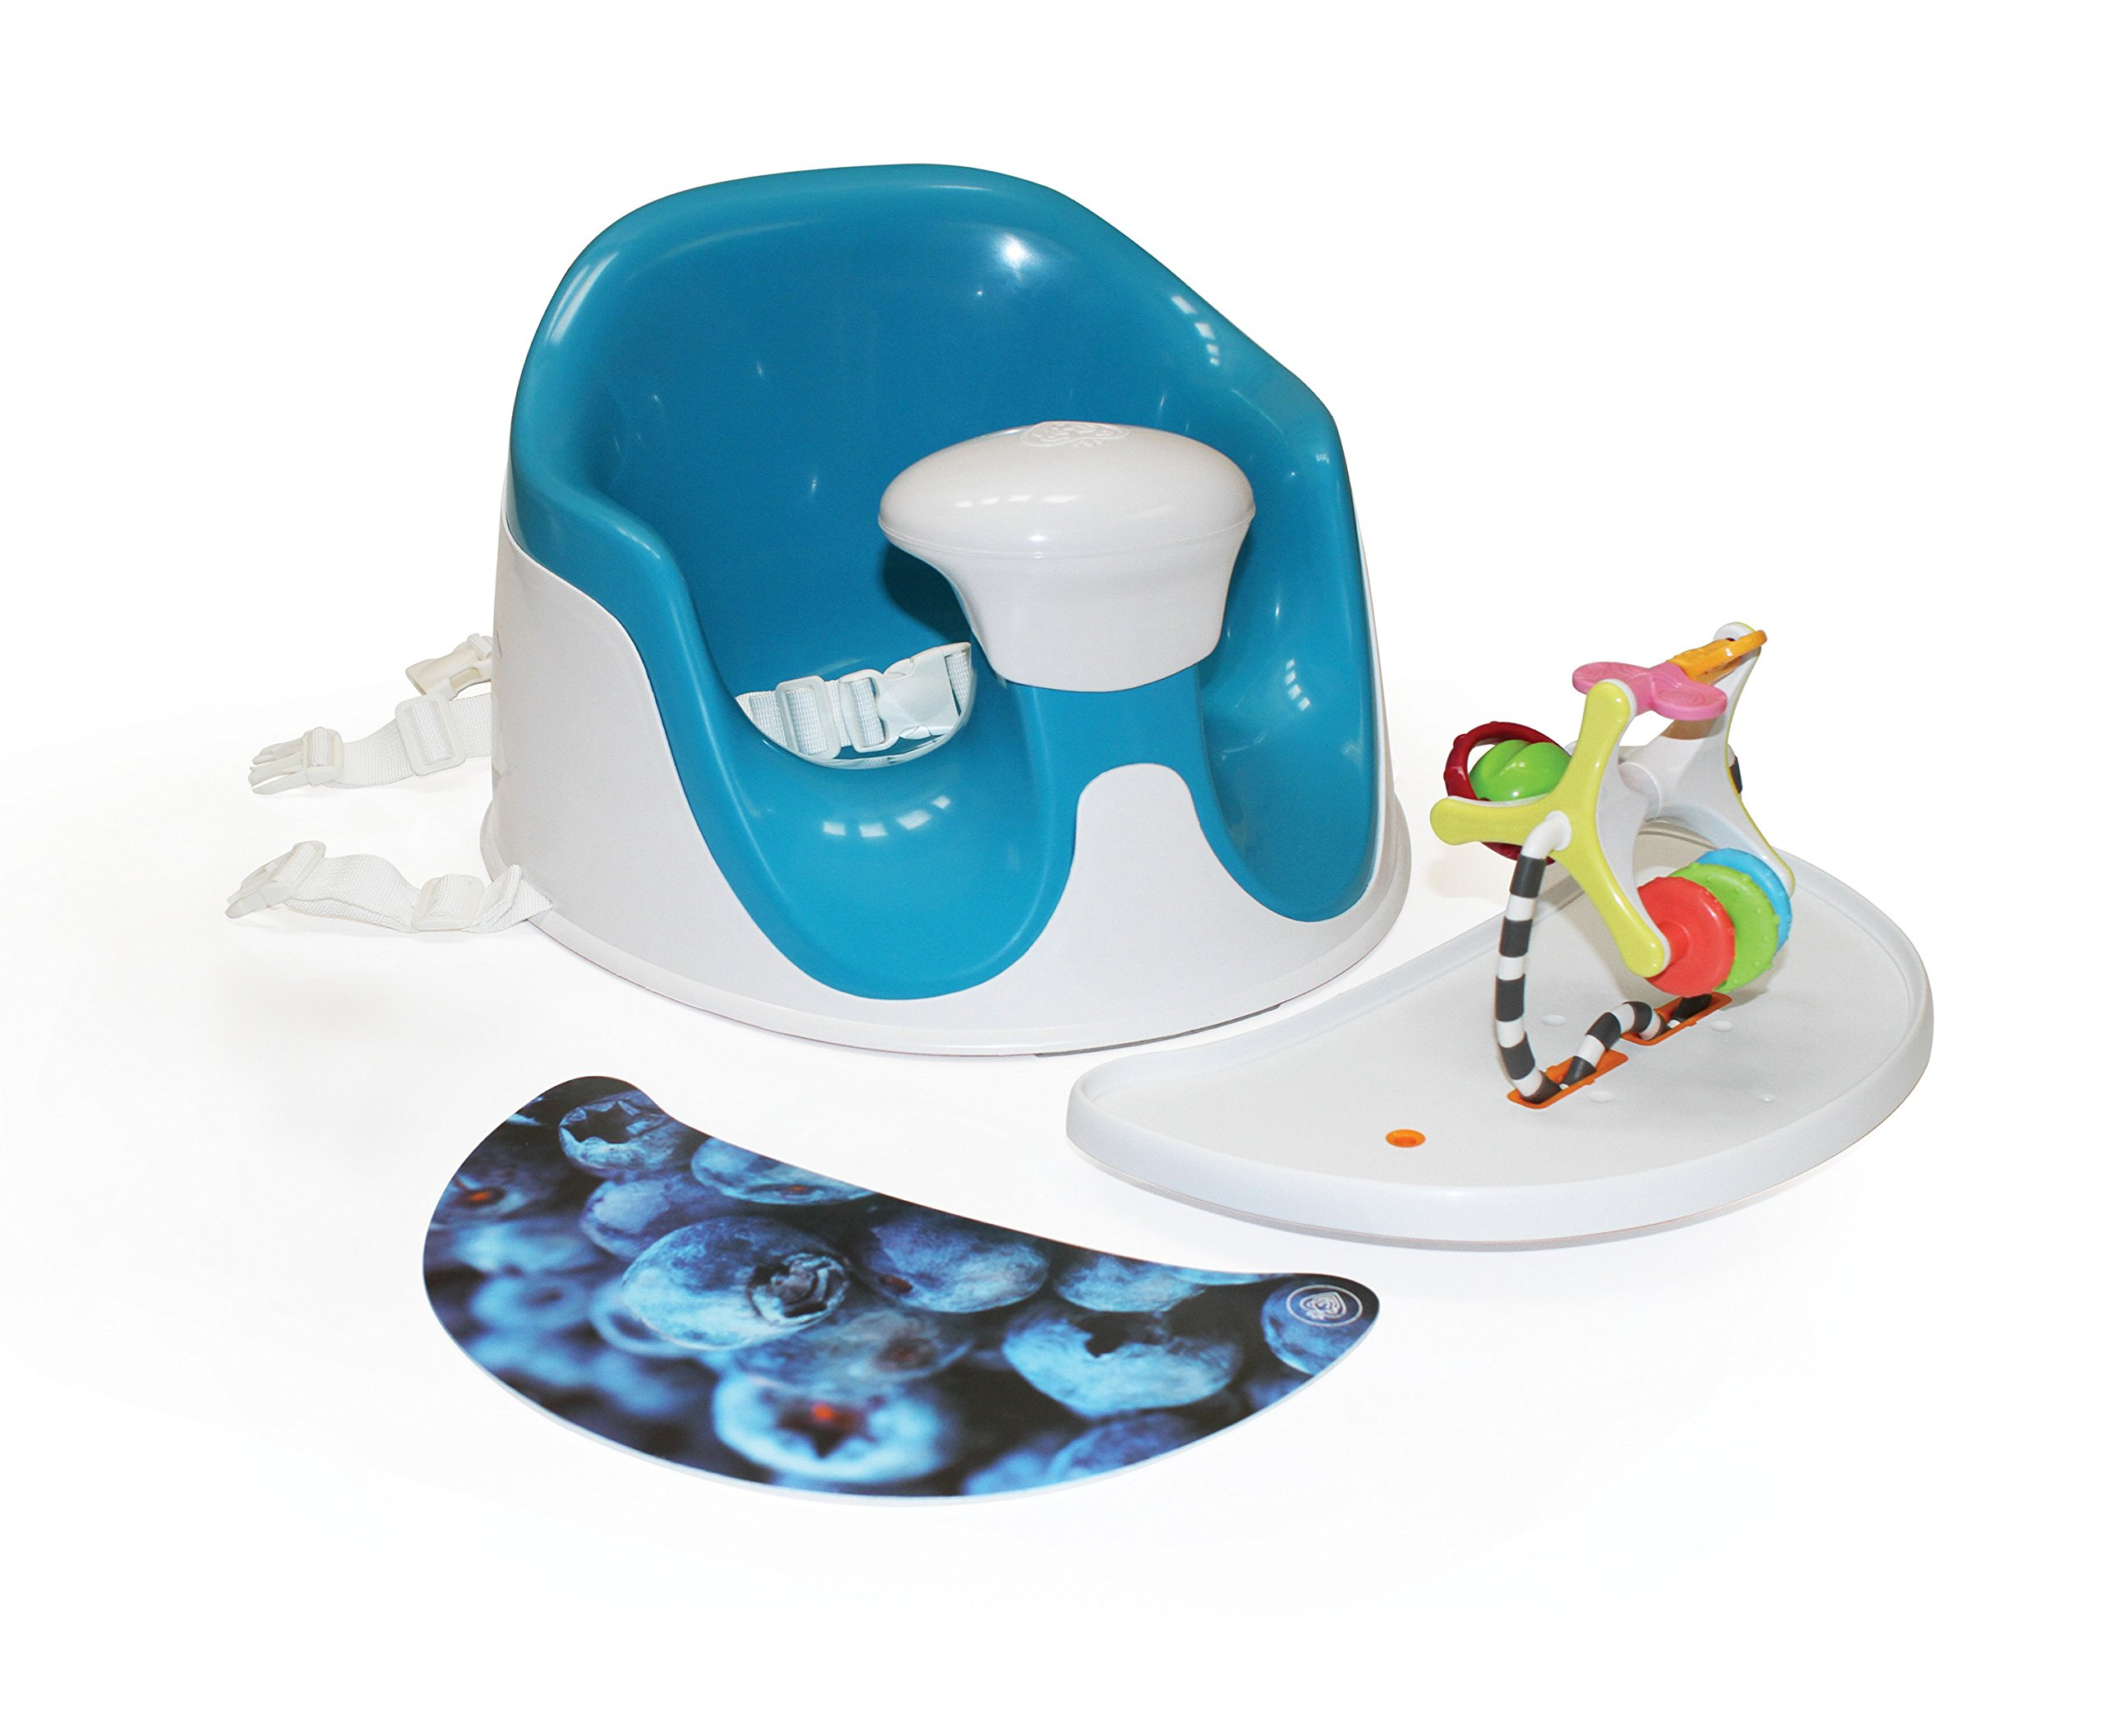 Prince Lion Heart BebePOD Chubs Plus Baby Sitter and Booster Seat, Berry Blue by Prince Lionheart